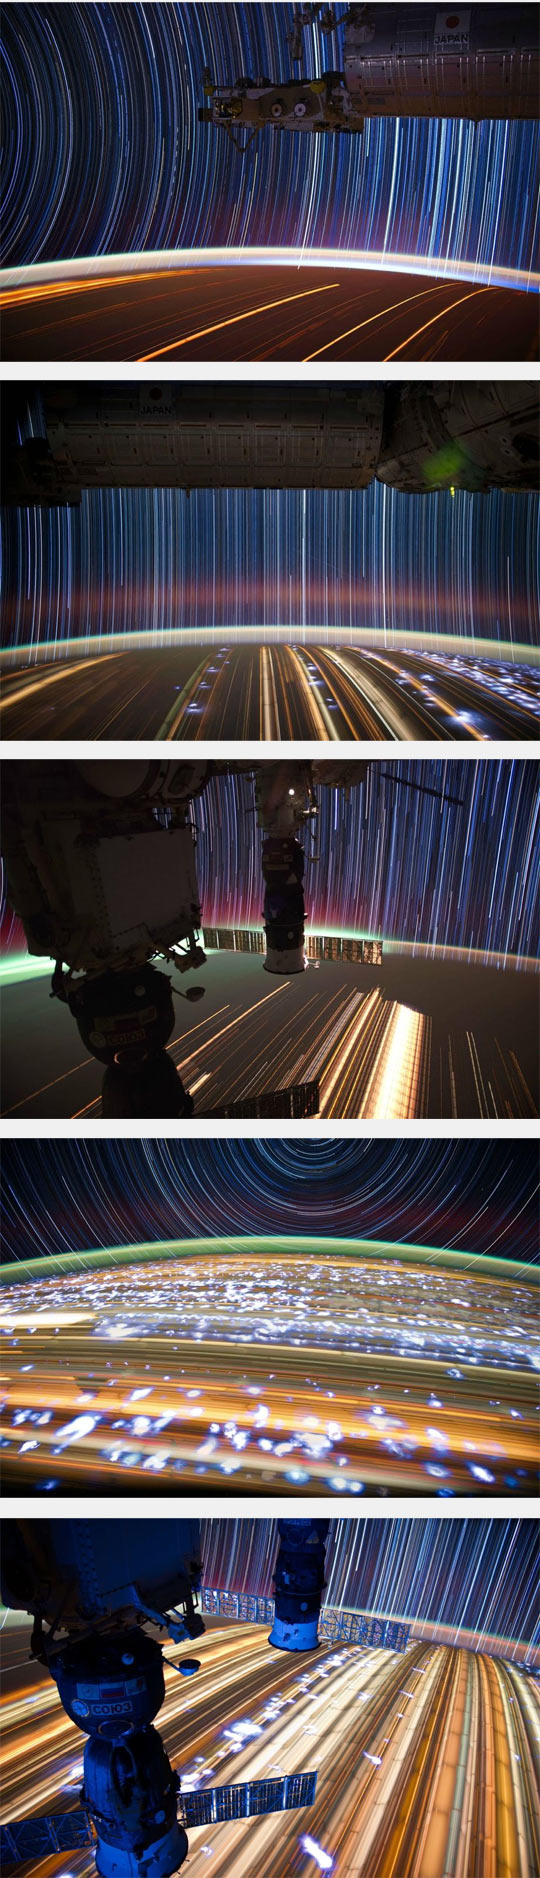 funny-long-exposure-space-photograph-lights